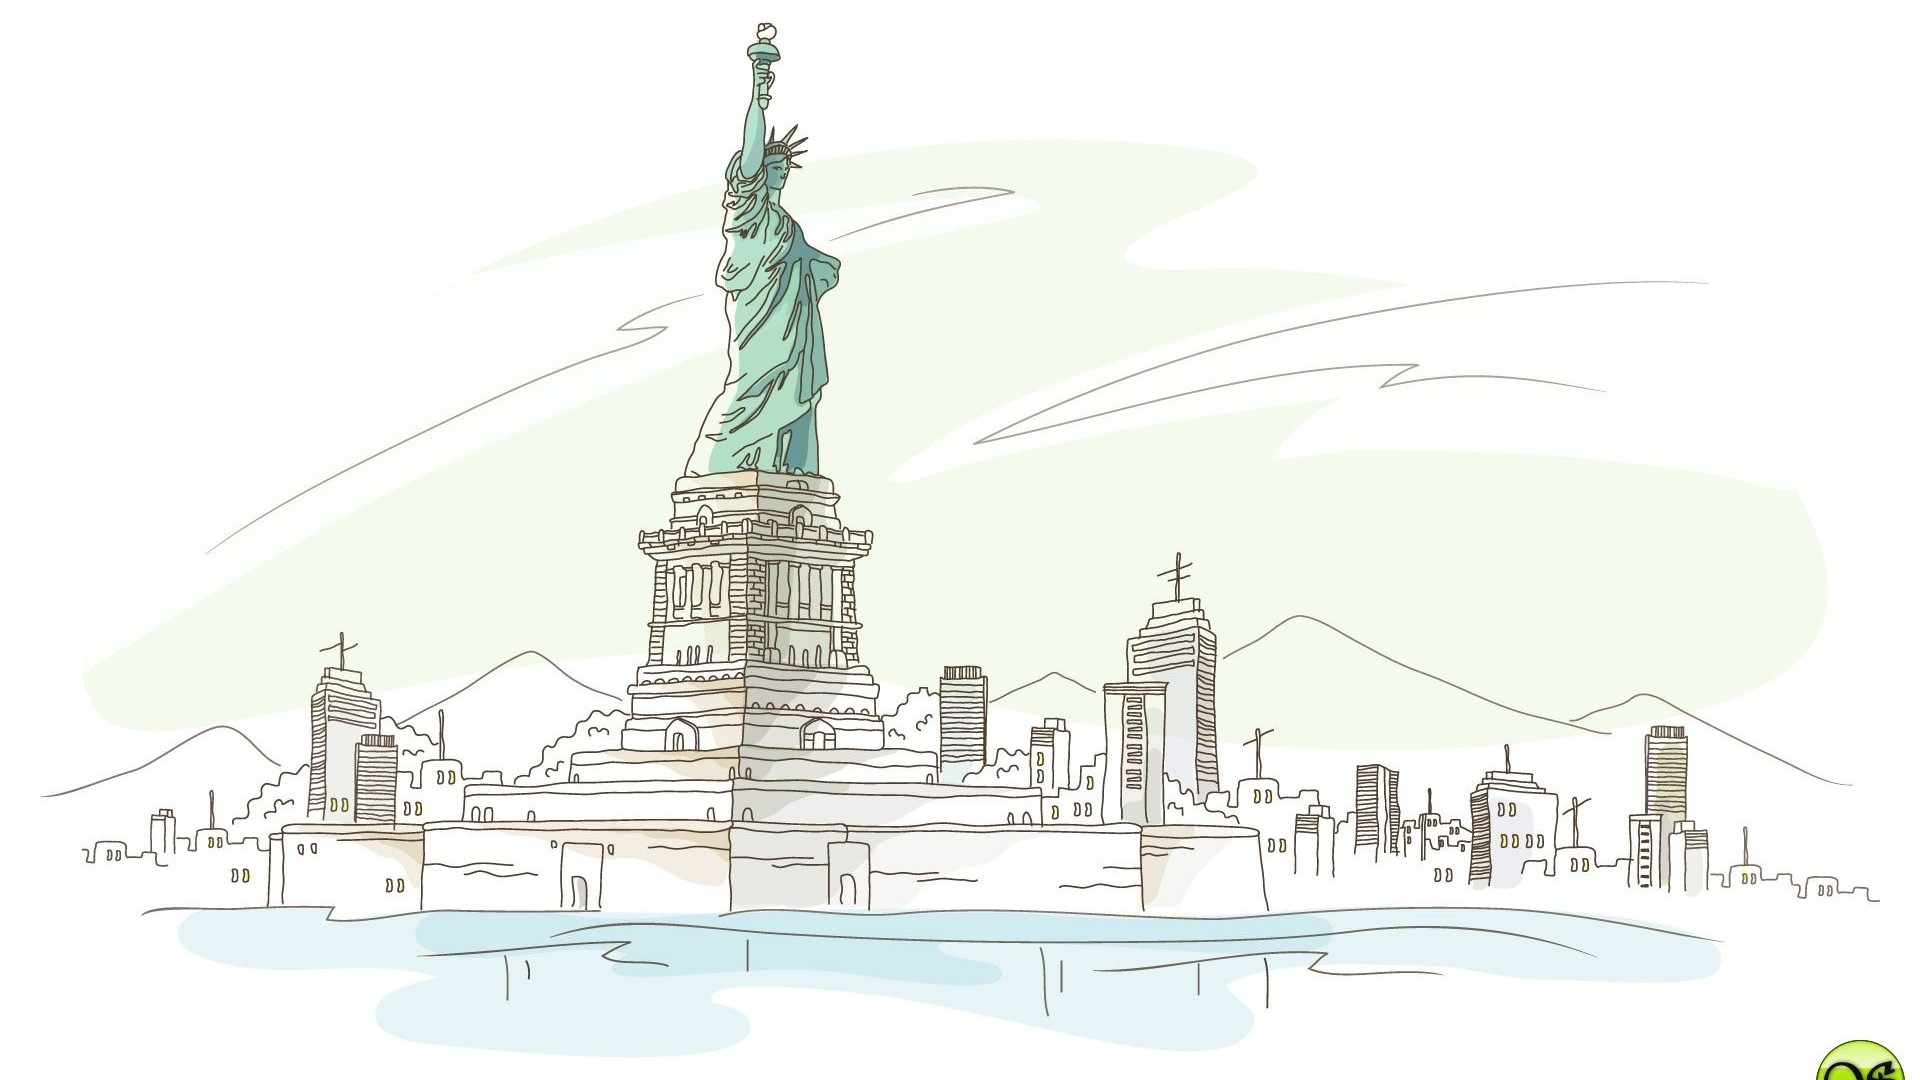 Architecture City Art Liberty Designs Statue 215648 Wallpaper